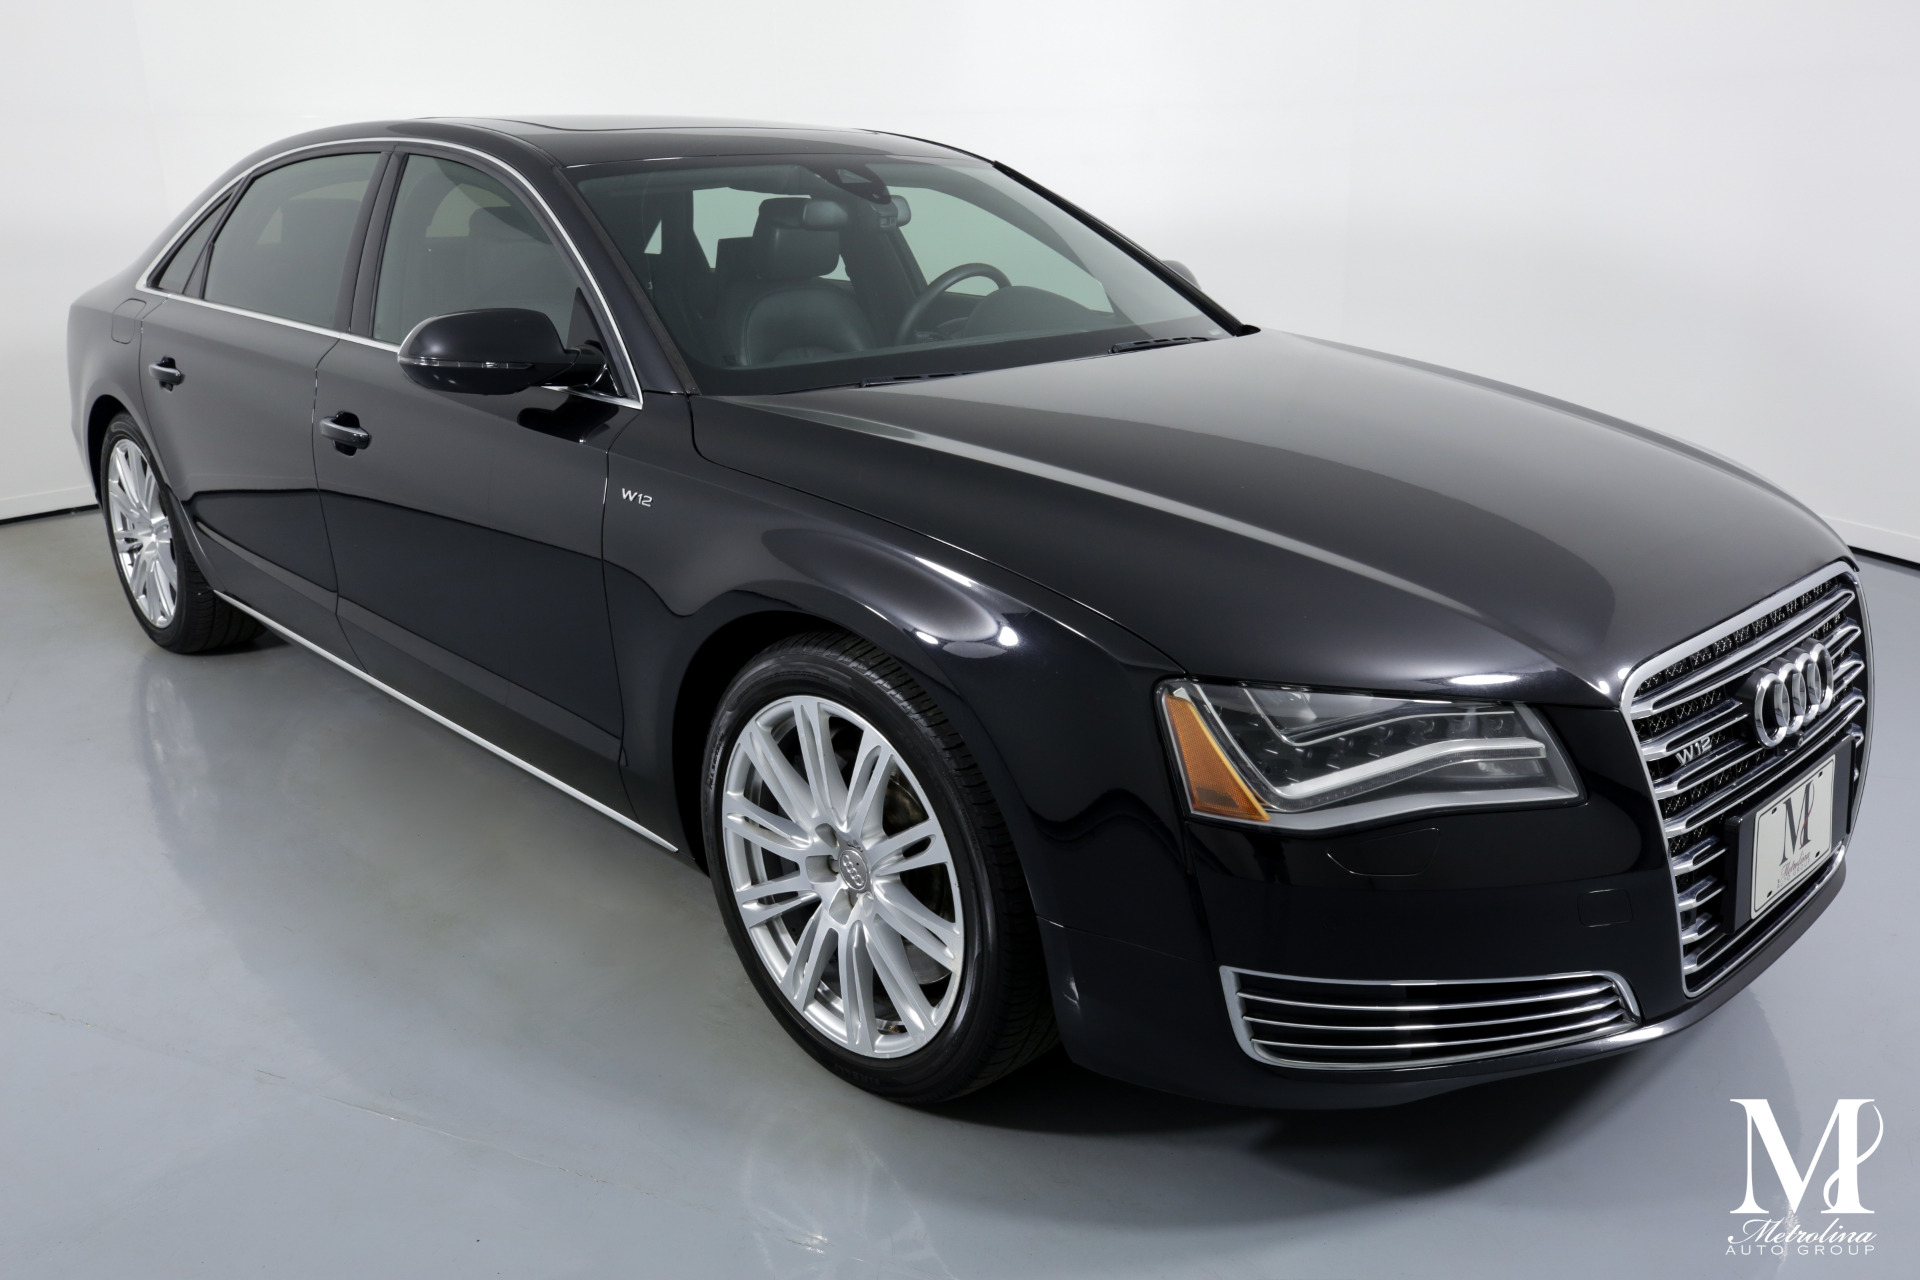 Used 2013 Audi A8 L W12 quattro for sale Sold at Metrolina Auto Group in Charlotte NC 28217 - 2